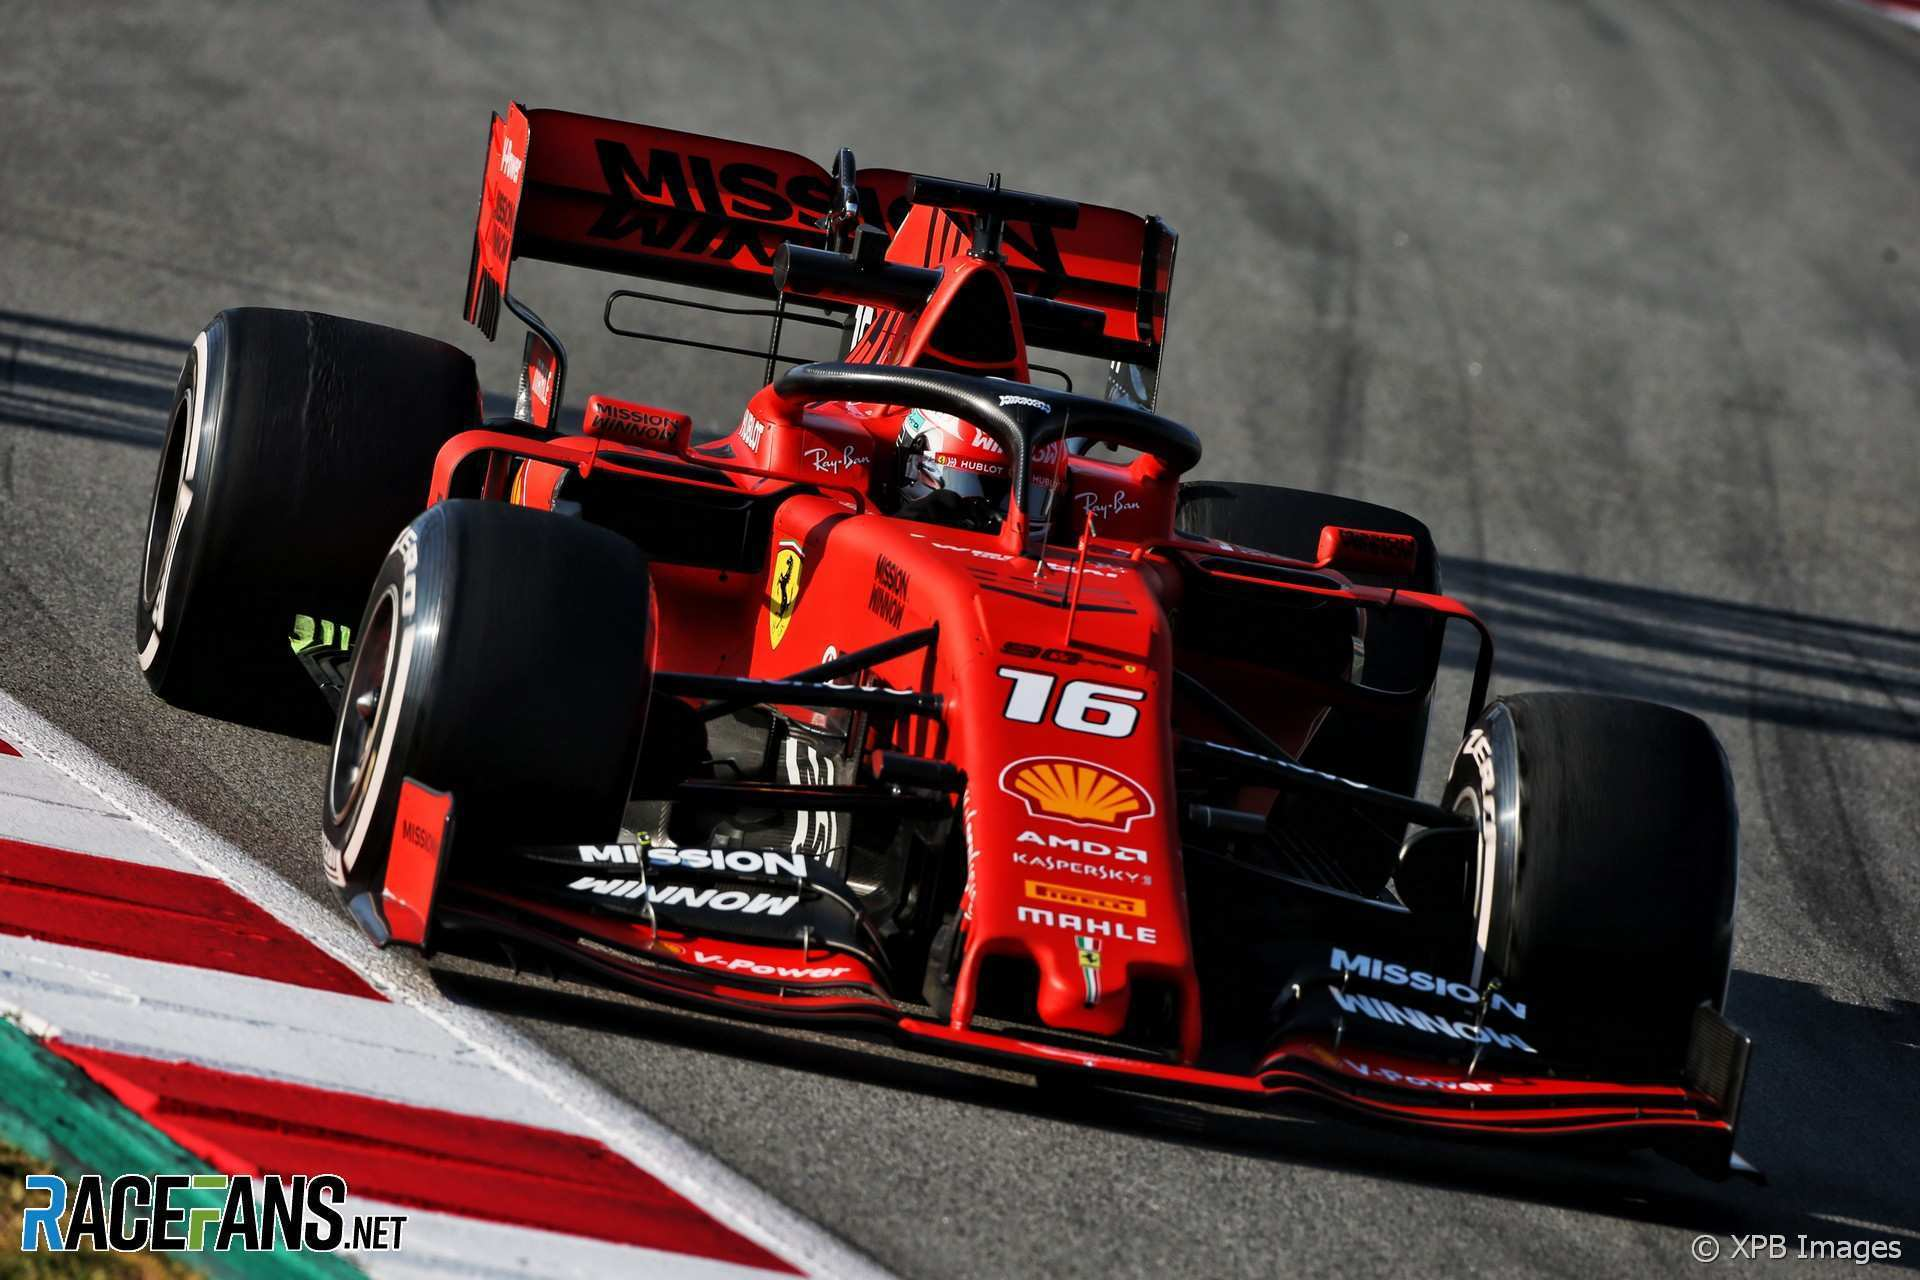 60 All New Best Ferrari Leclerc 2019 Specs And Review Overview with Best Ferrari Leclerc 2019 Specs And Review